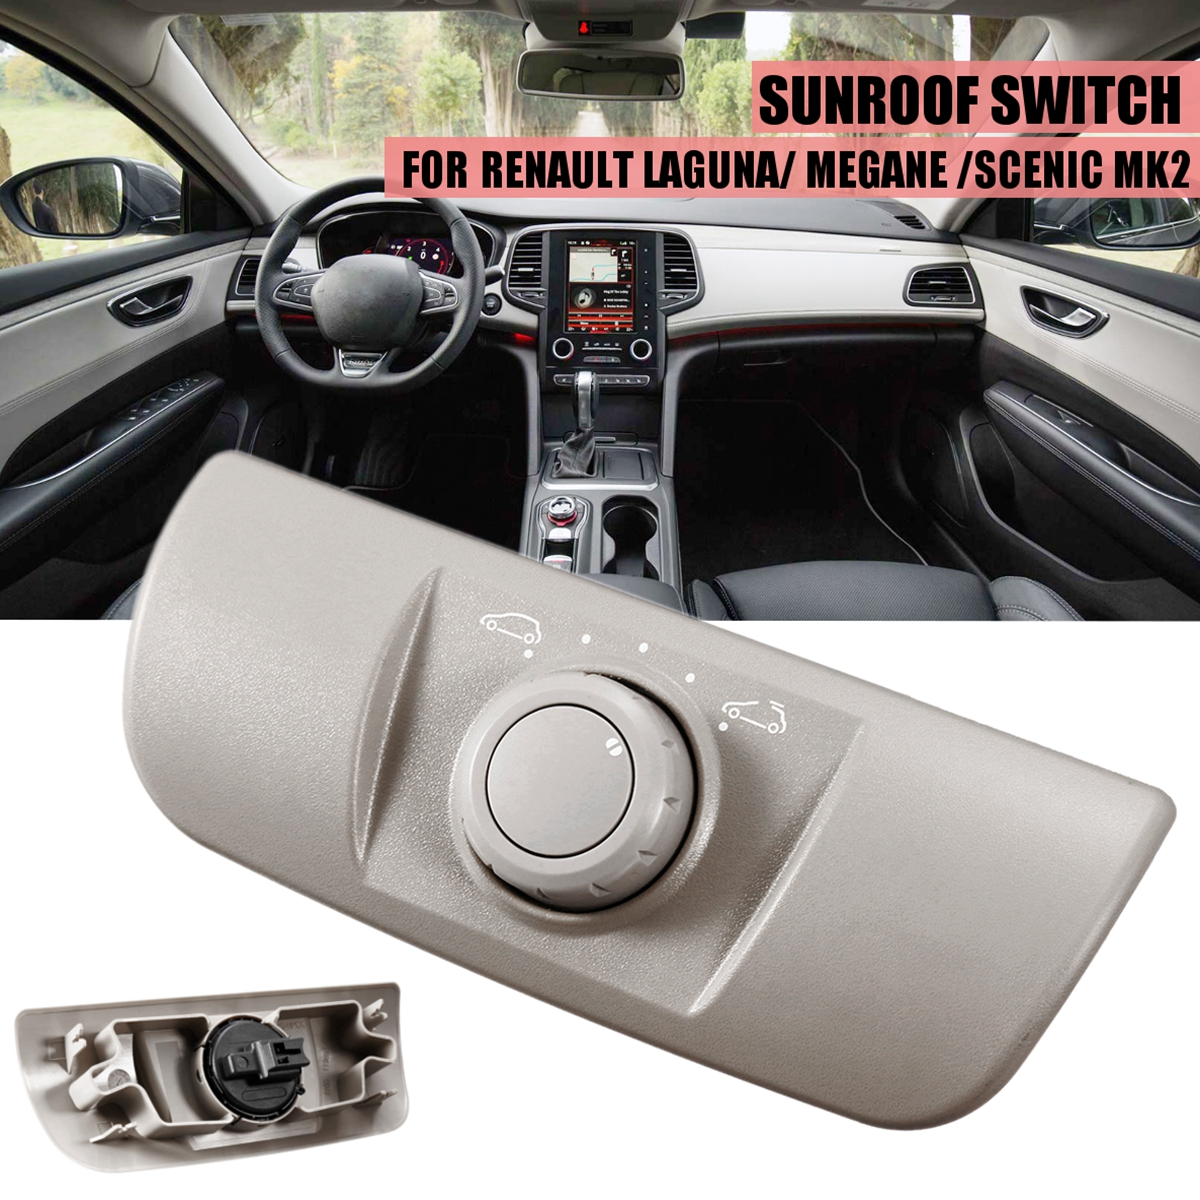 Grey for Renault Megane SCENIC LAGUNA MK2 HB 2002 2015 Sunroof Window Switch Control 8200119893 Auto Replacement Parts Switches